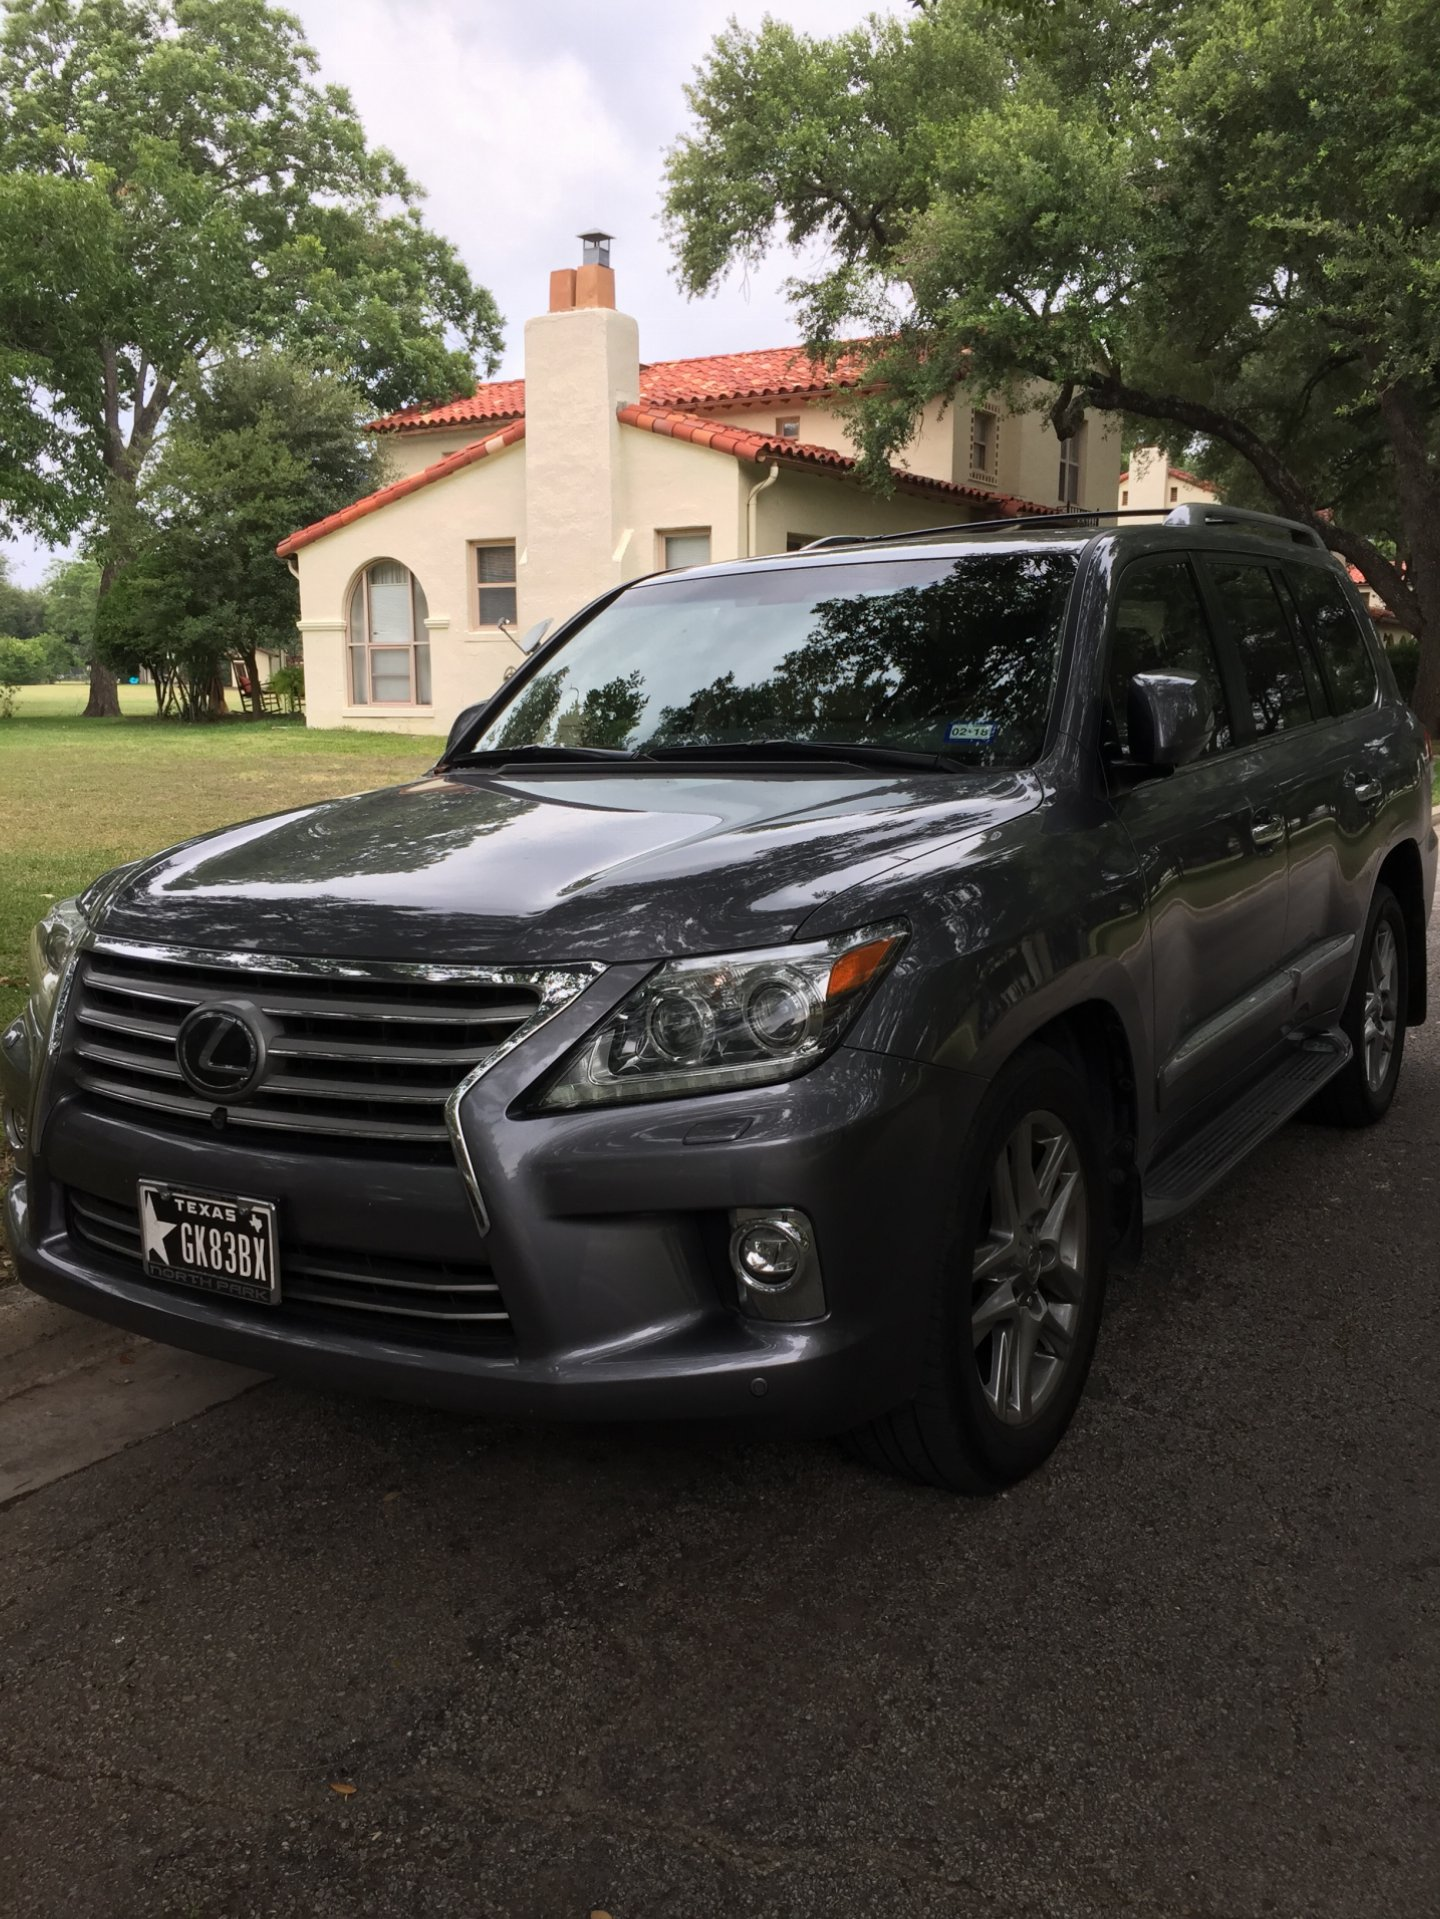 for sale 2015 lexus lx 570 in texas ih8mud forum. Black Bedroom Furniture Sets. Home Design Ideas